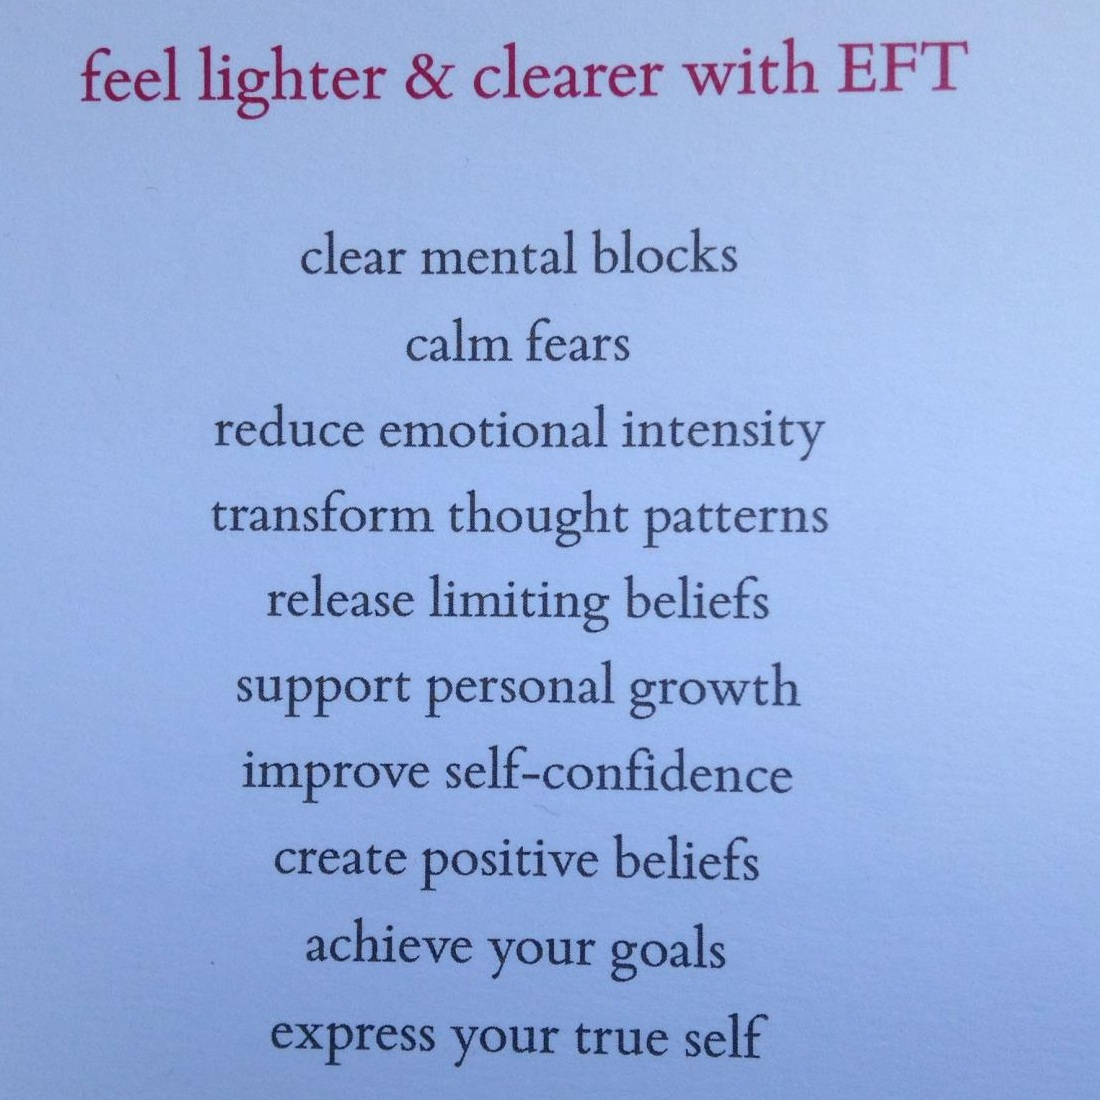 EFT-Benefits-at-White-Soul-Therapies_483332_large.jpg